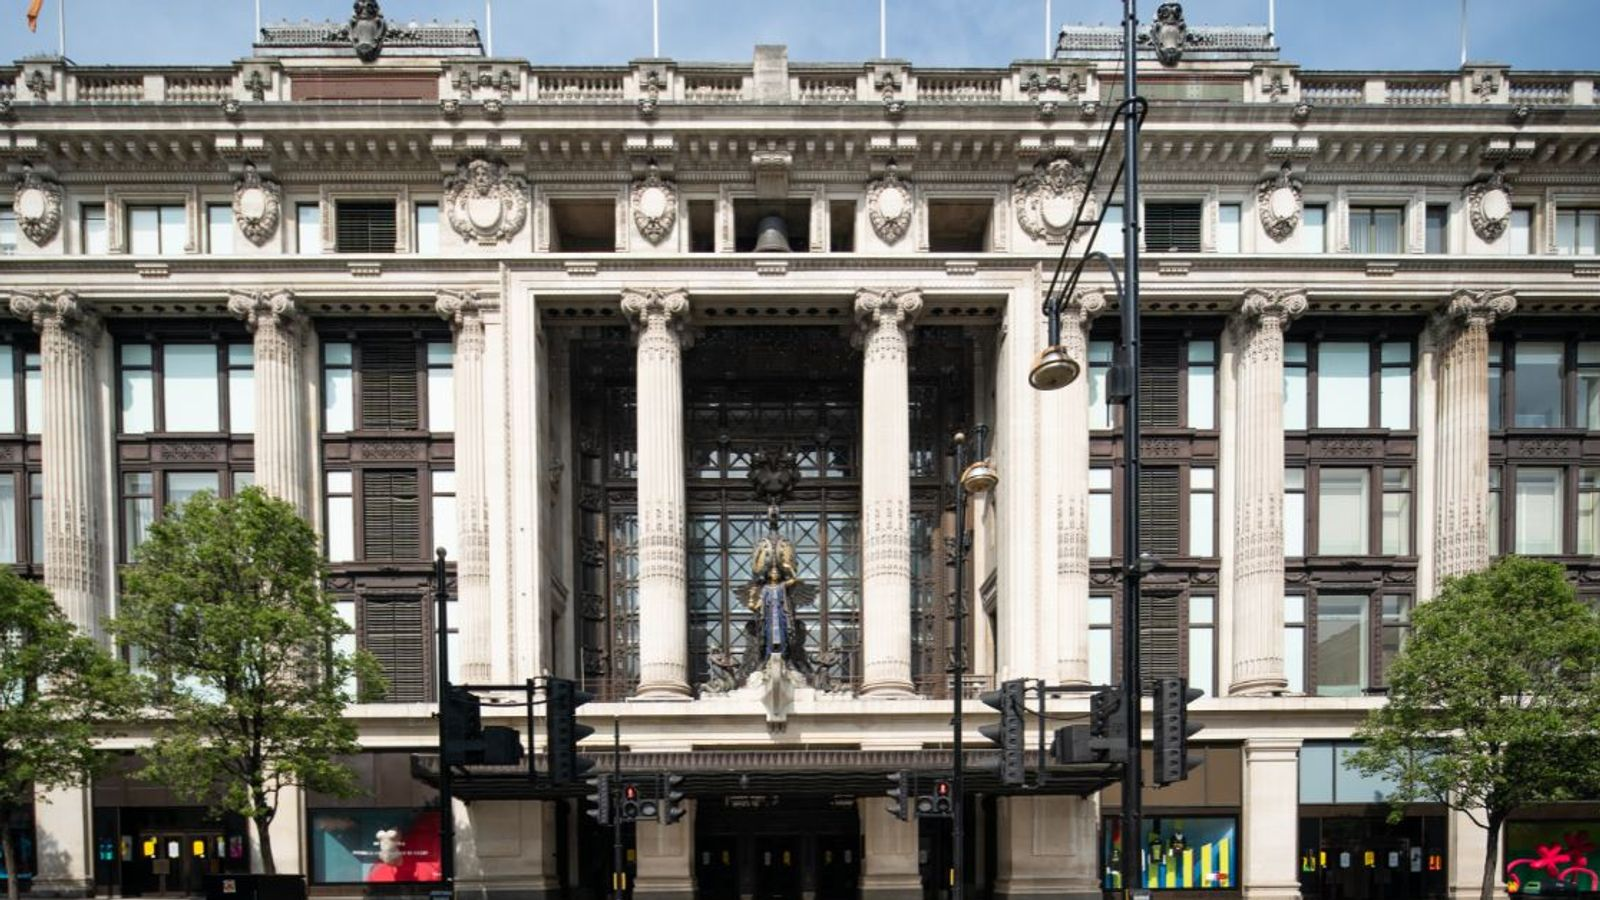 Selfridges could fetch £4bn as 'for sale' sign goes up